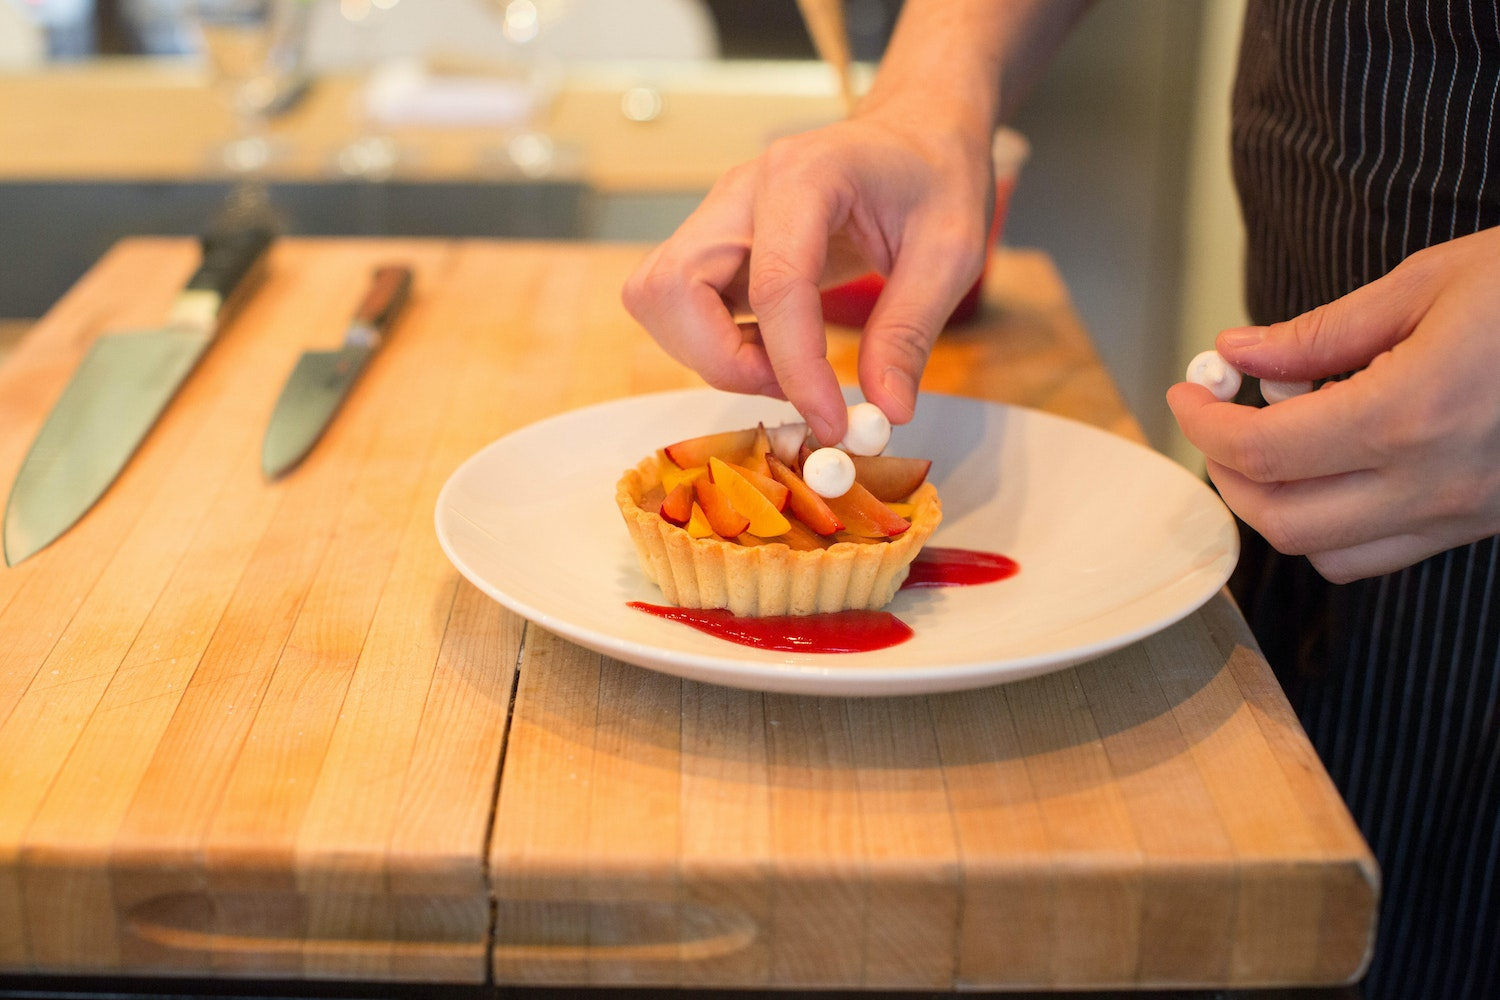 Stir offers Boston residents cookbooks, cooking classes—and even culinary-focused trips.